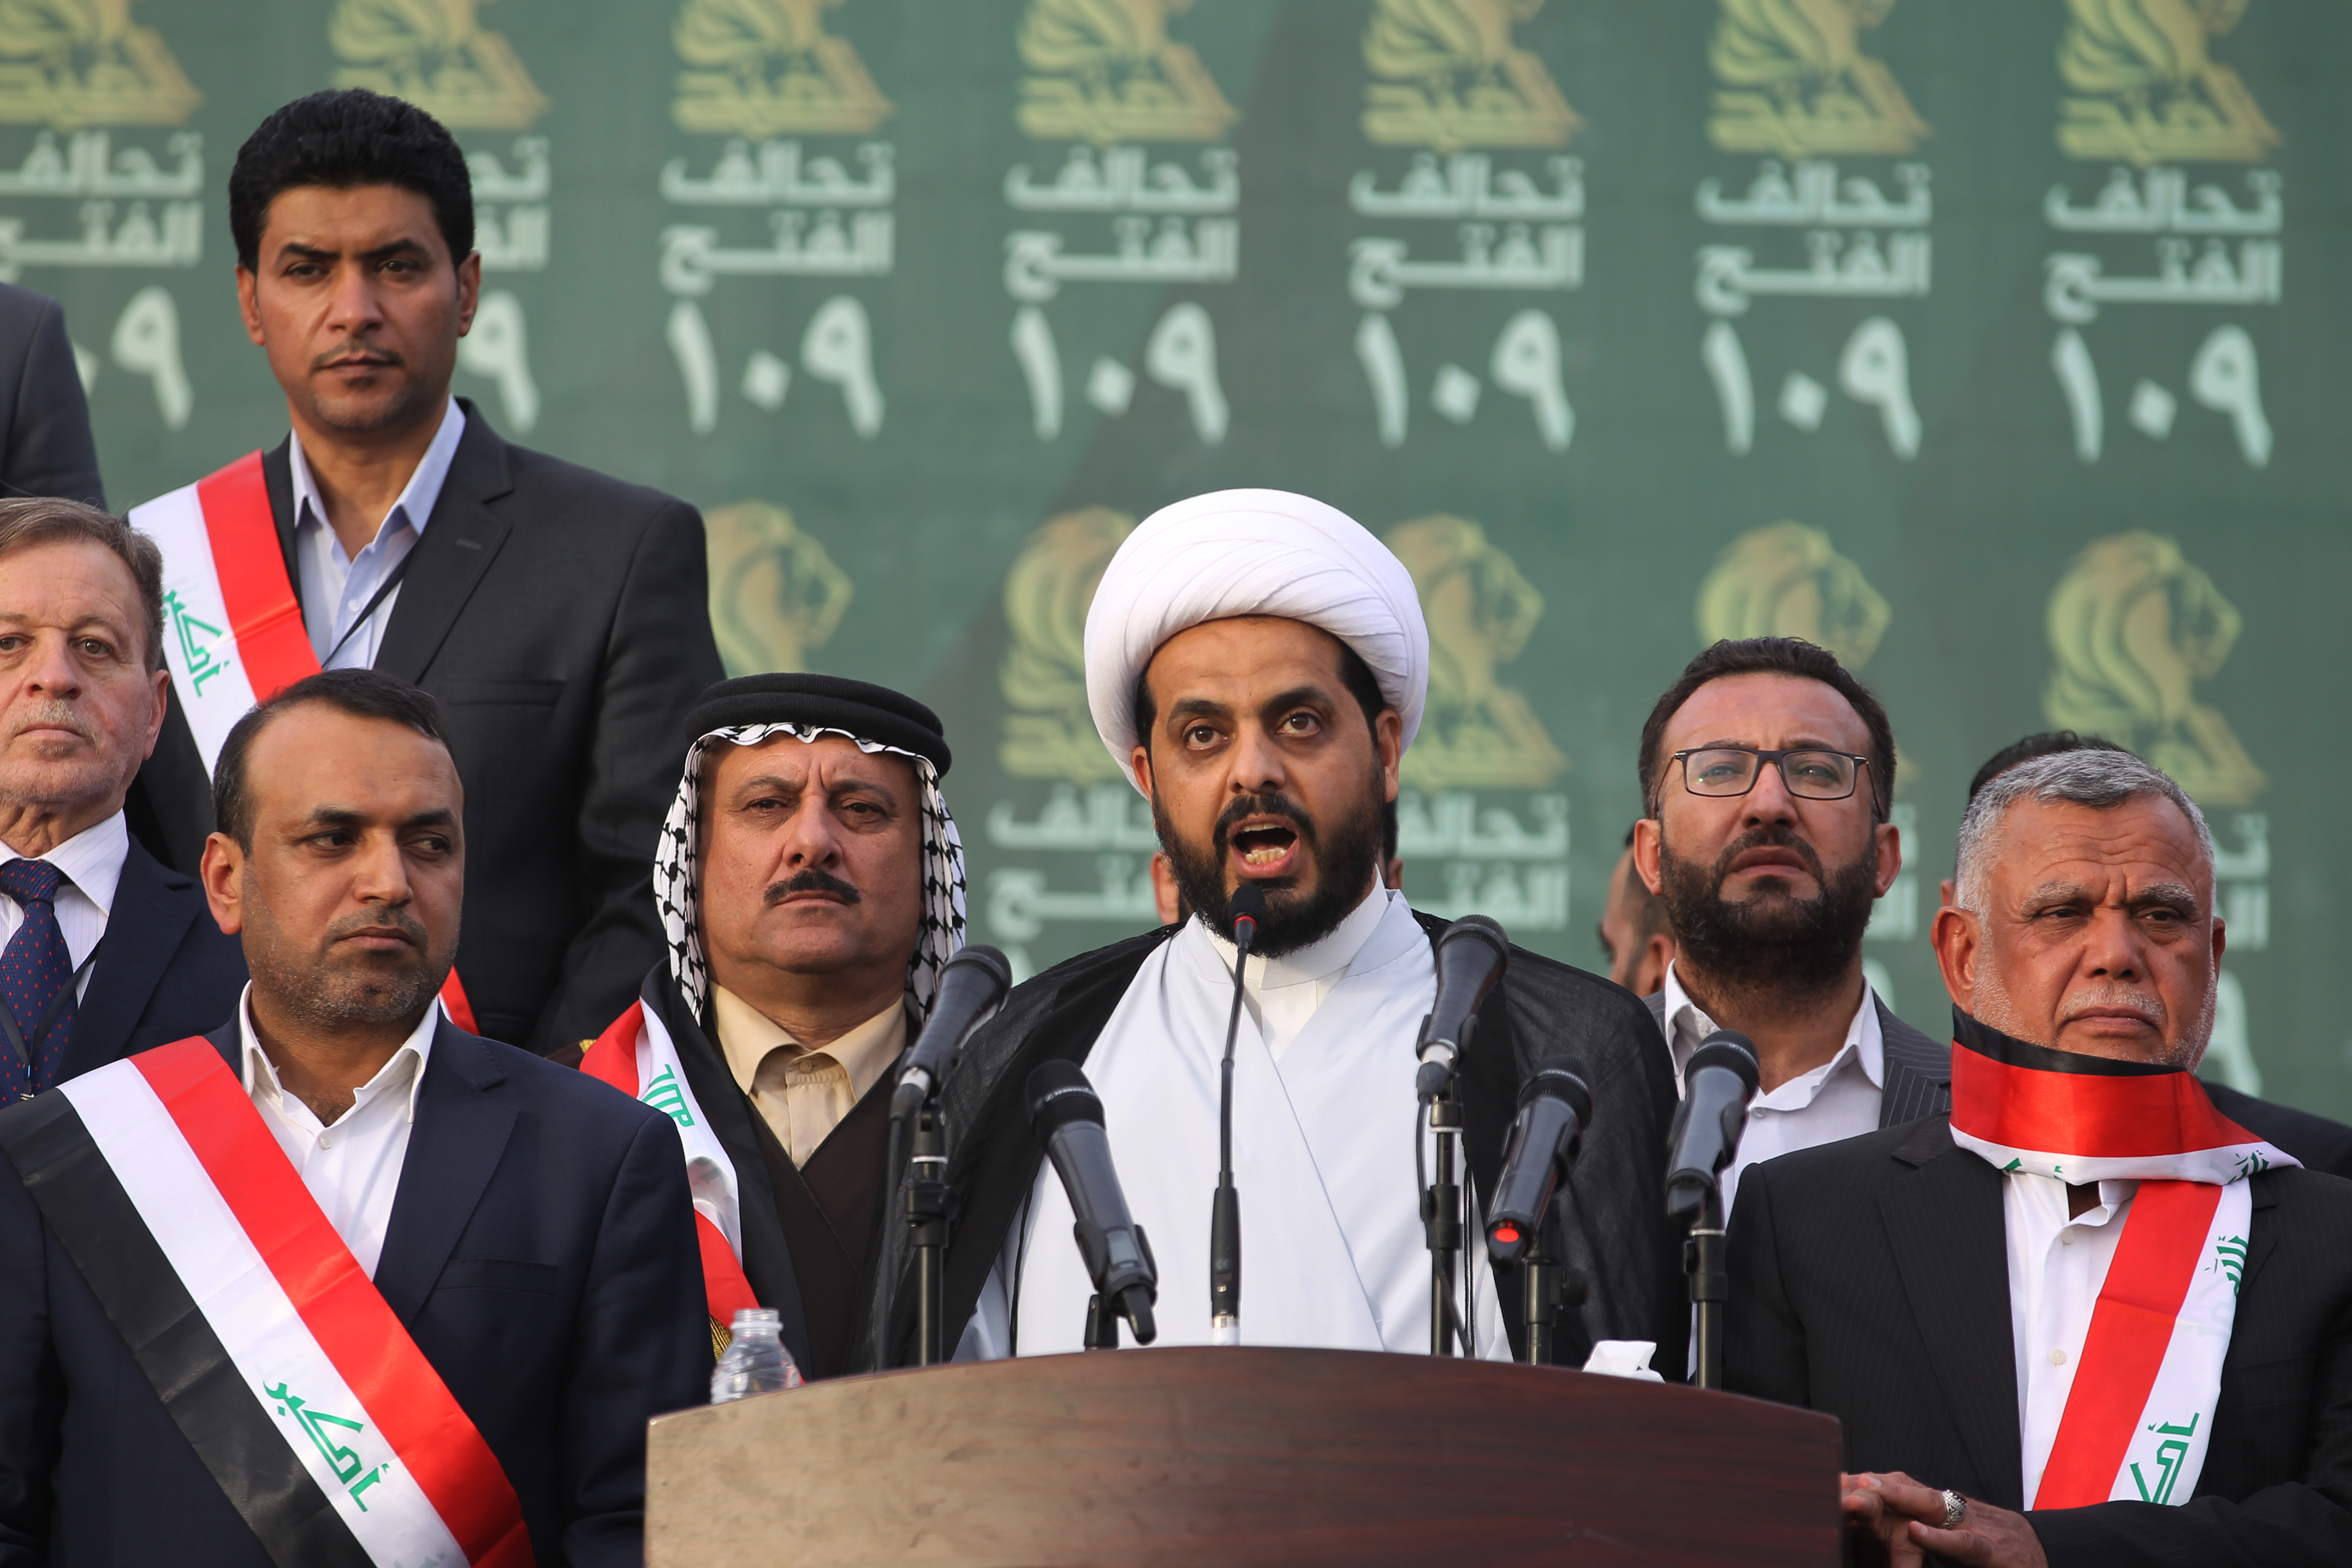 Qais al-Khazali, centre, leader of the Asa'ib Ahl al-Haq, gives a speech in Baghdad during a campaign rally for the Fateh Alliance, a coalition of Iranian-supported militia groups (AFP)